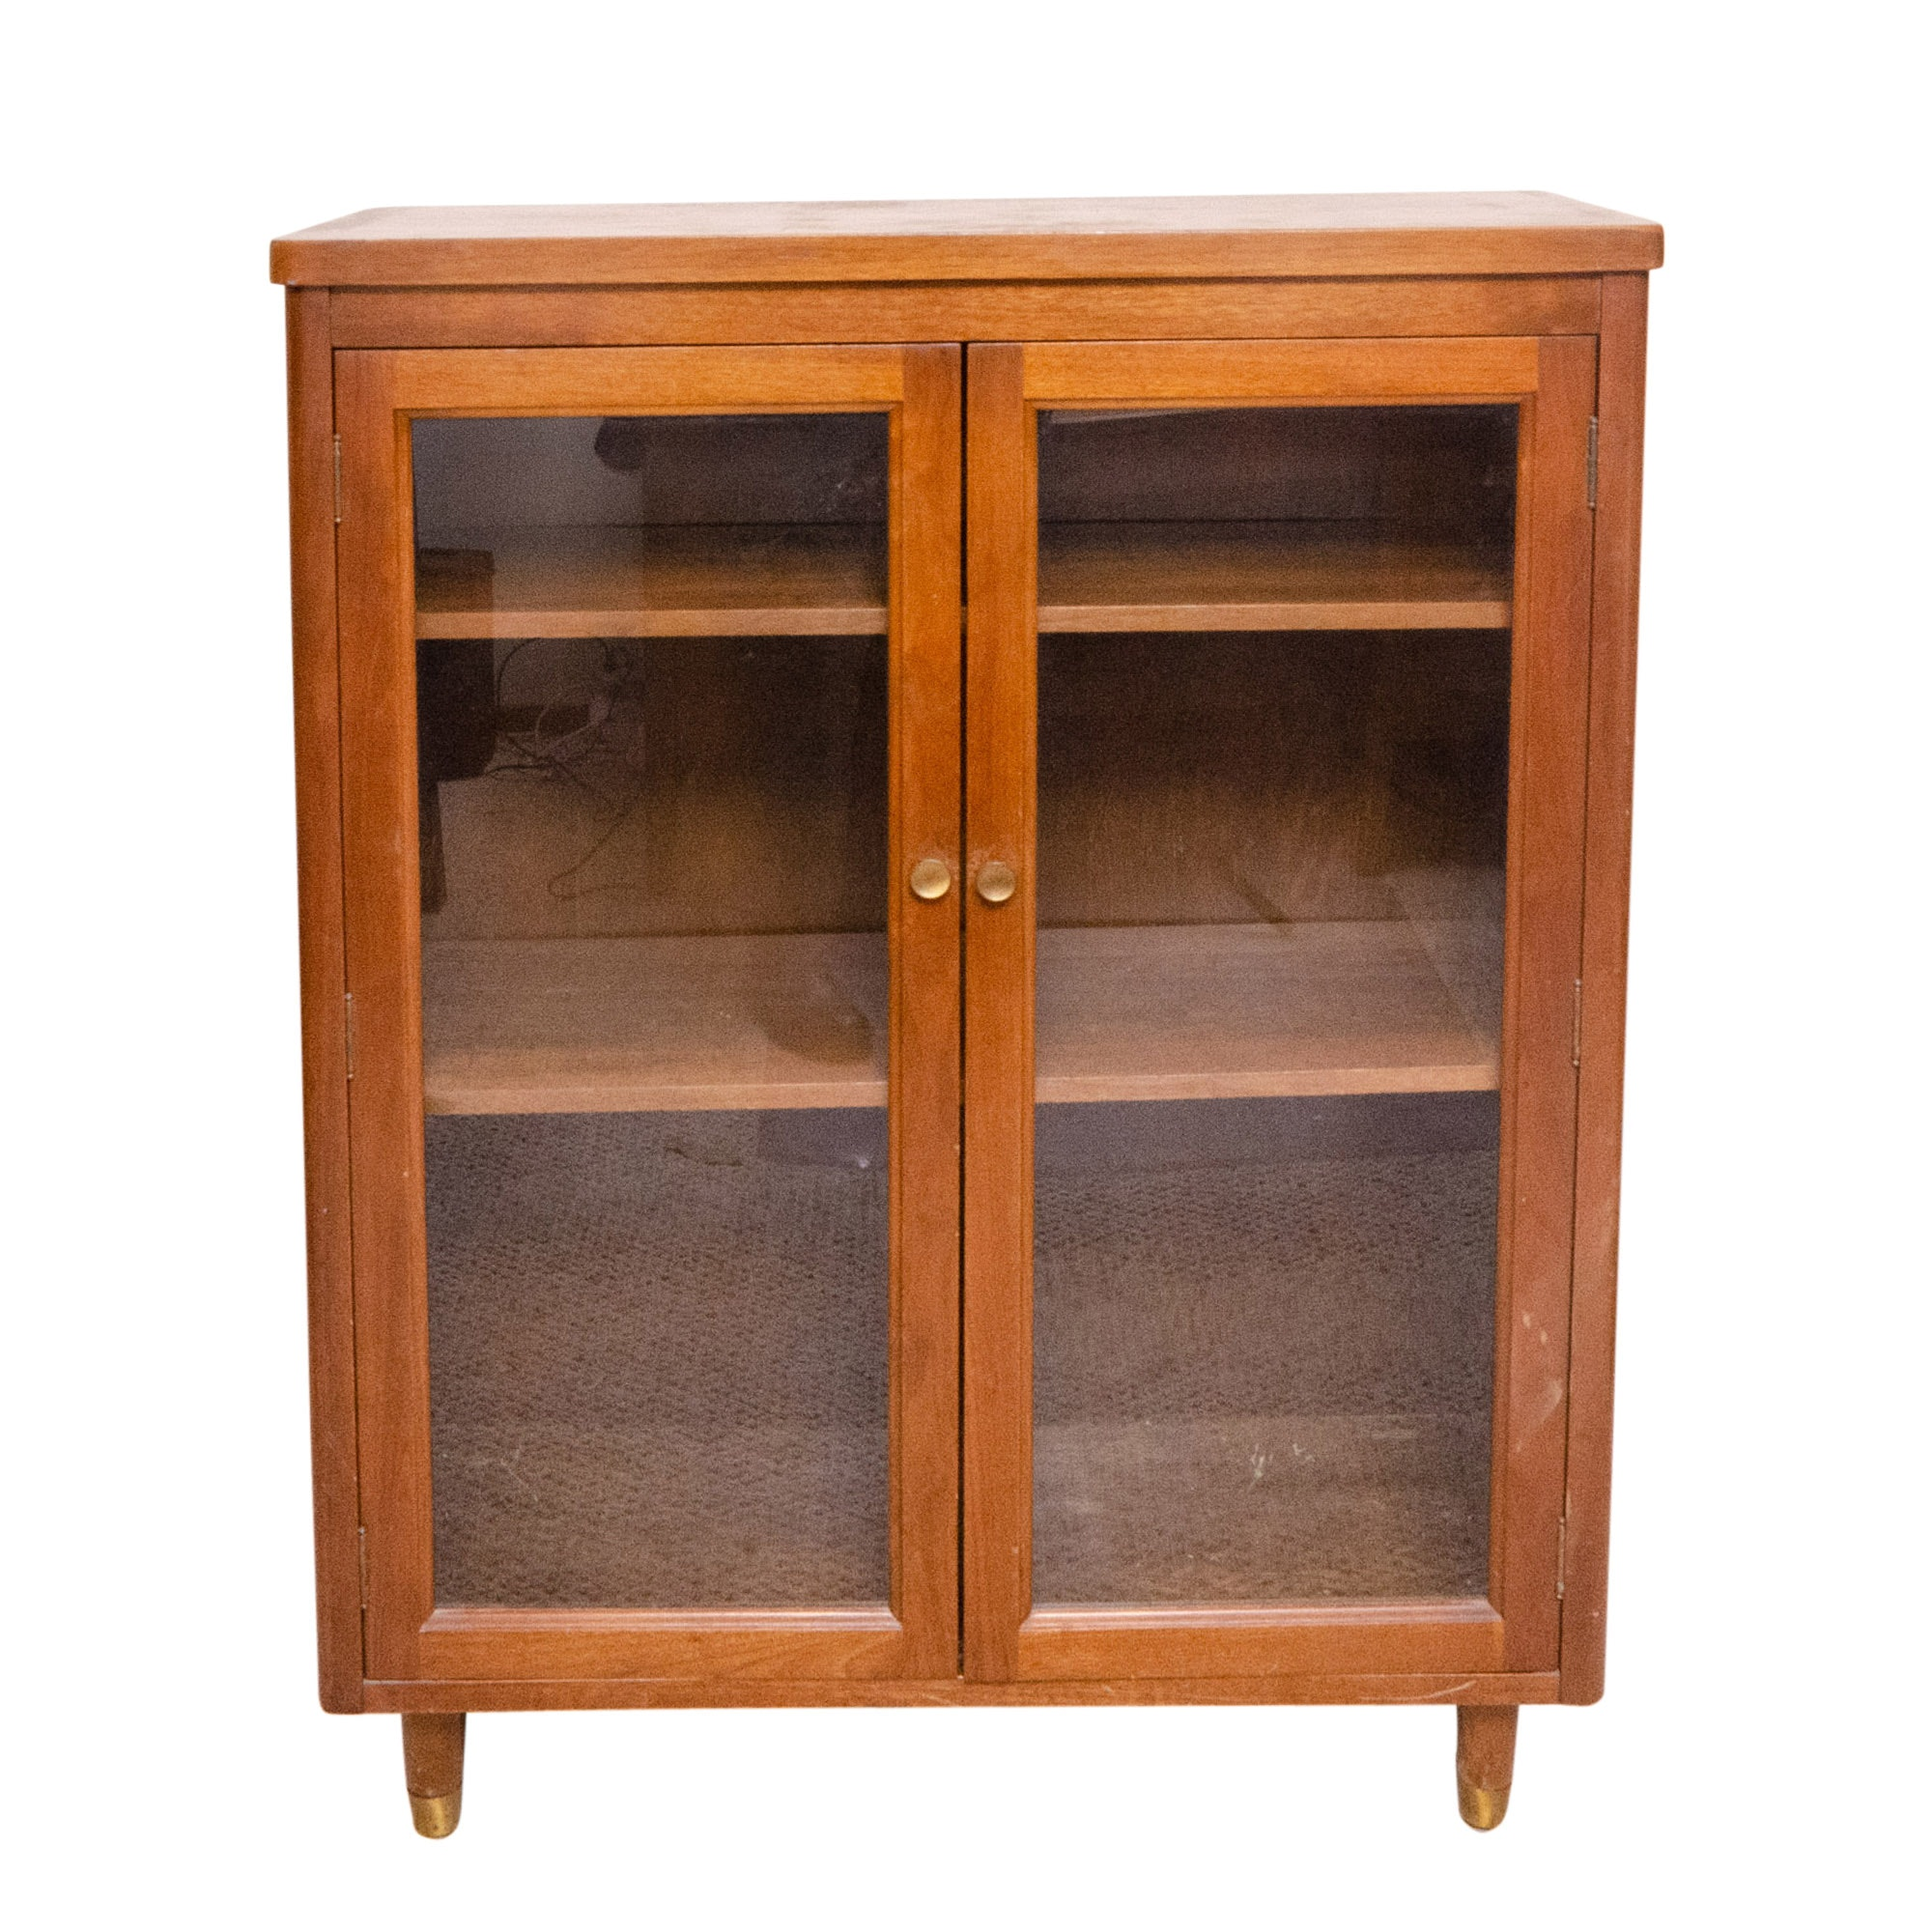 Mid Century Modern Glass and Walnut Cabinet